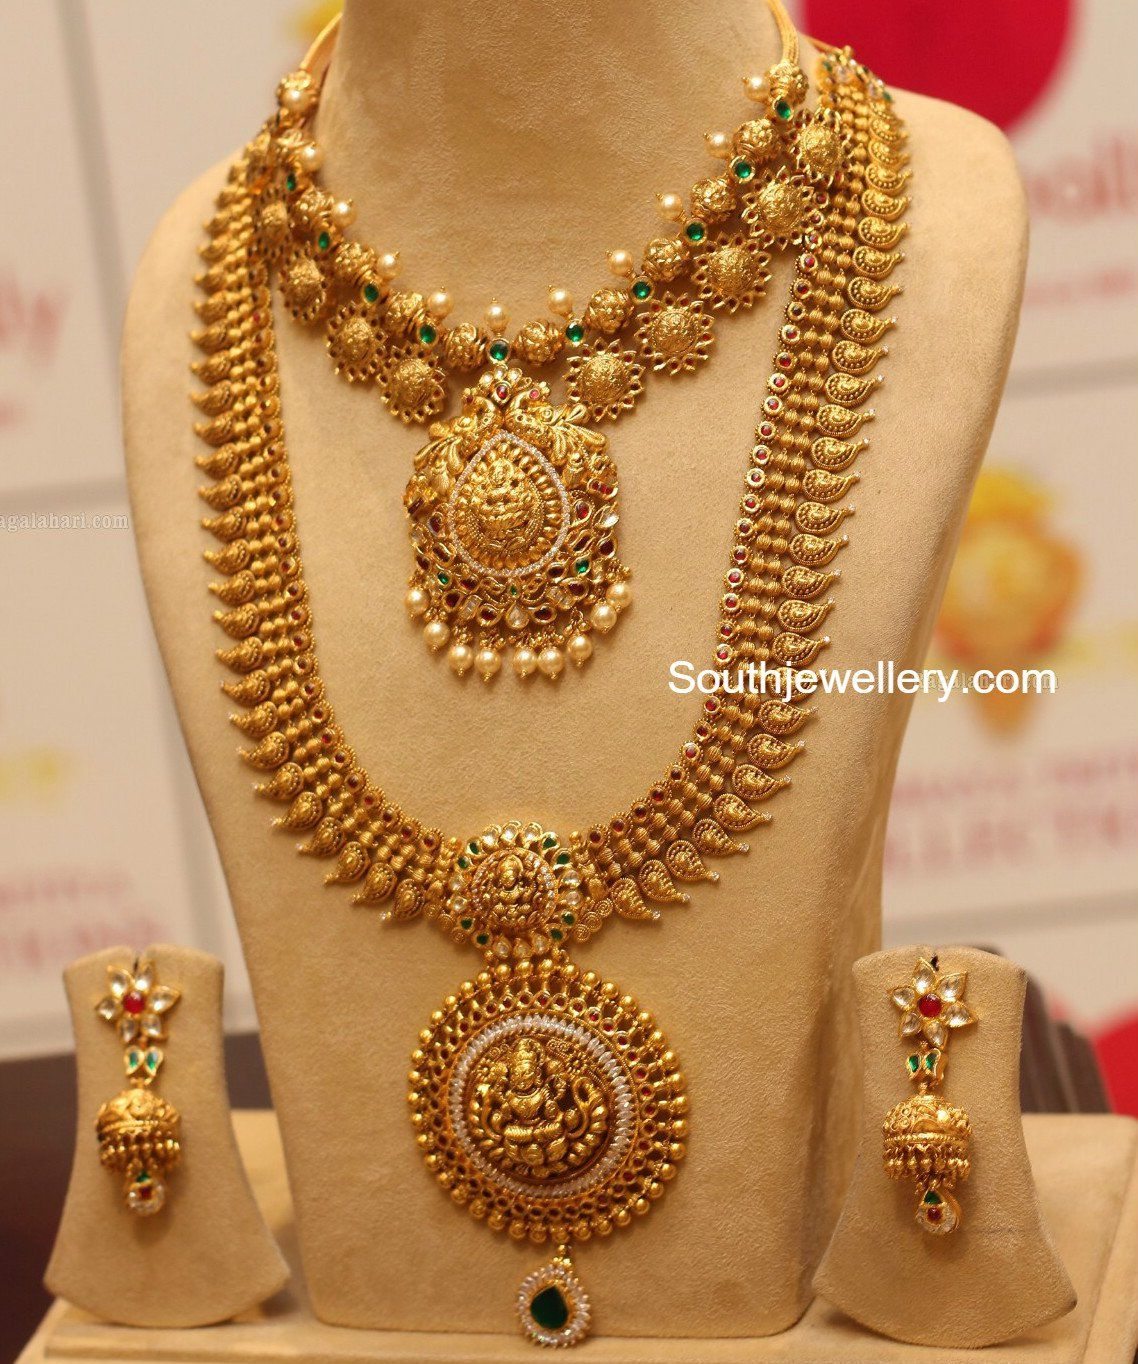 Find This Pin And More On Indian Jewelry